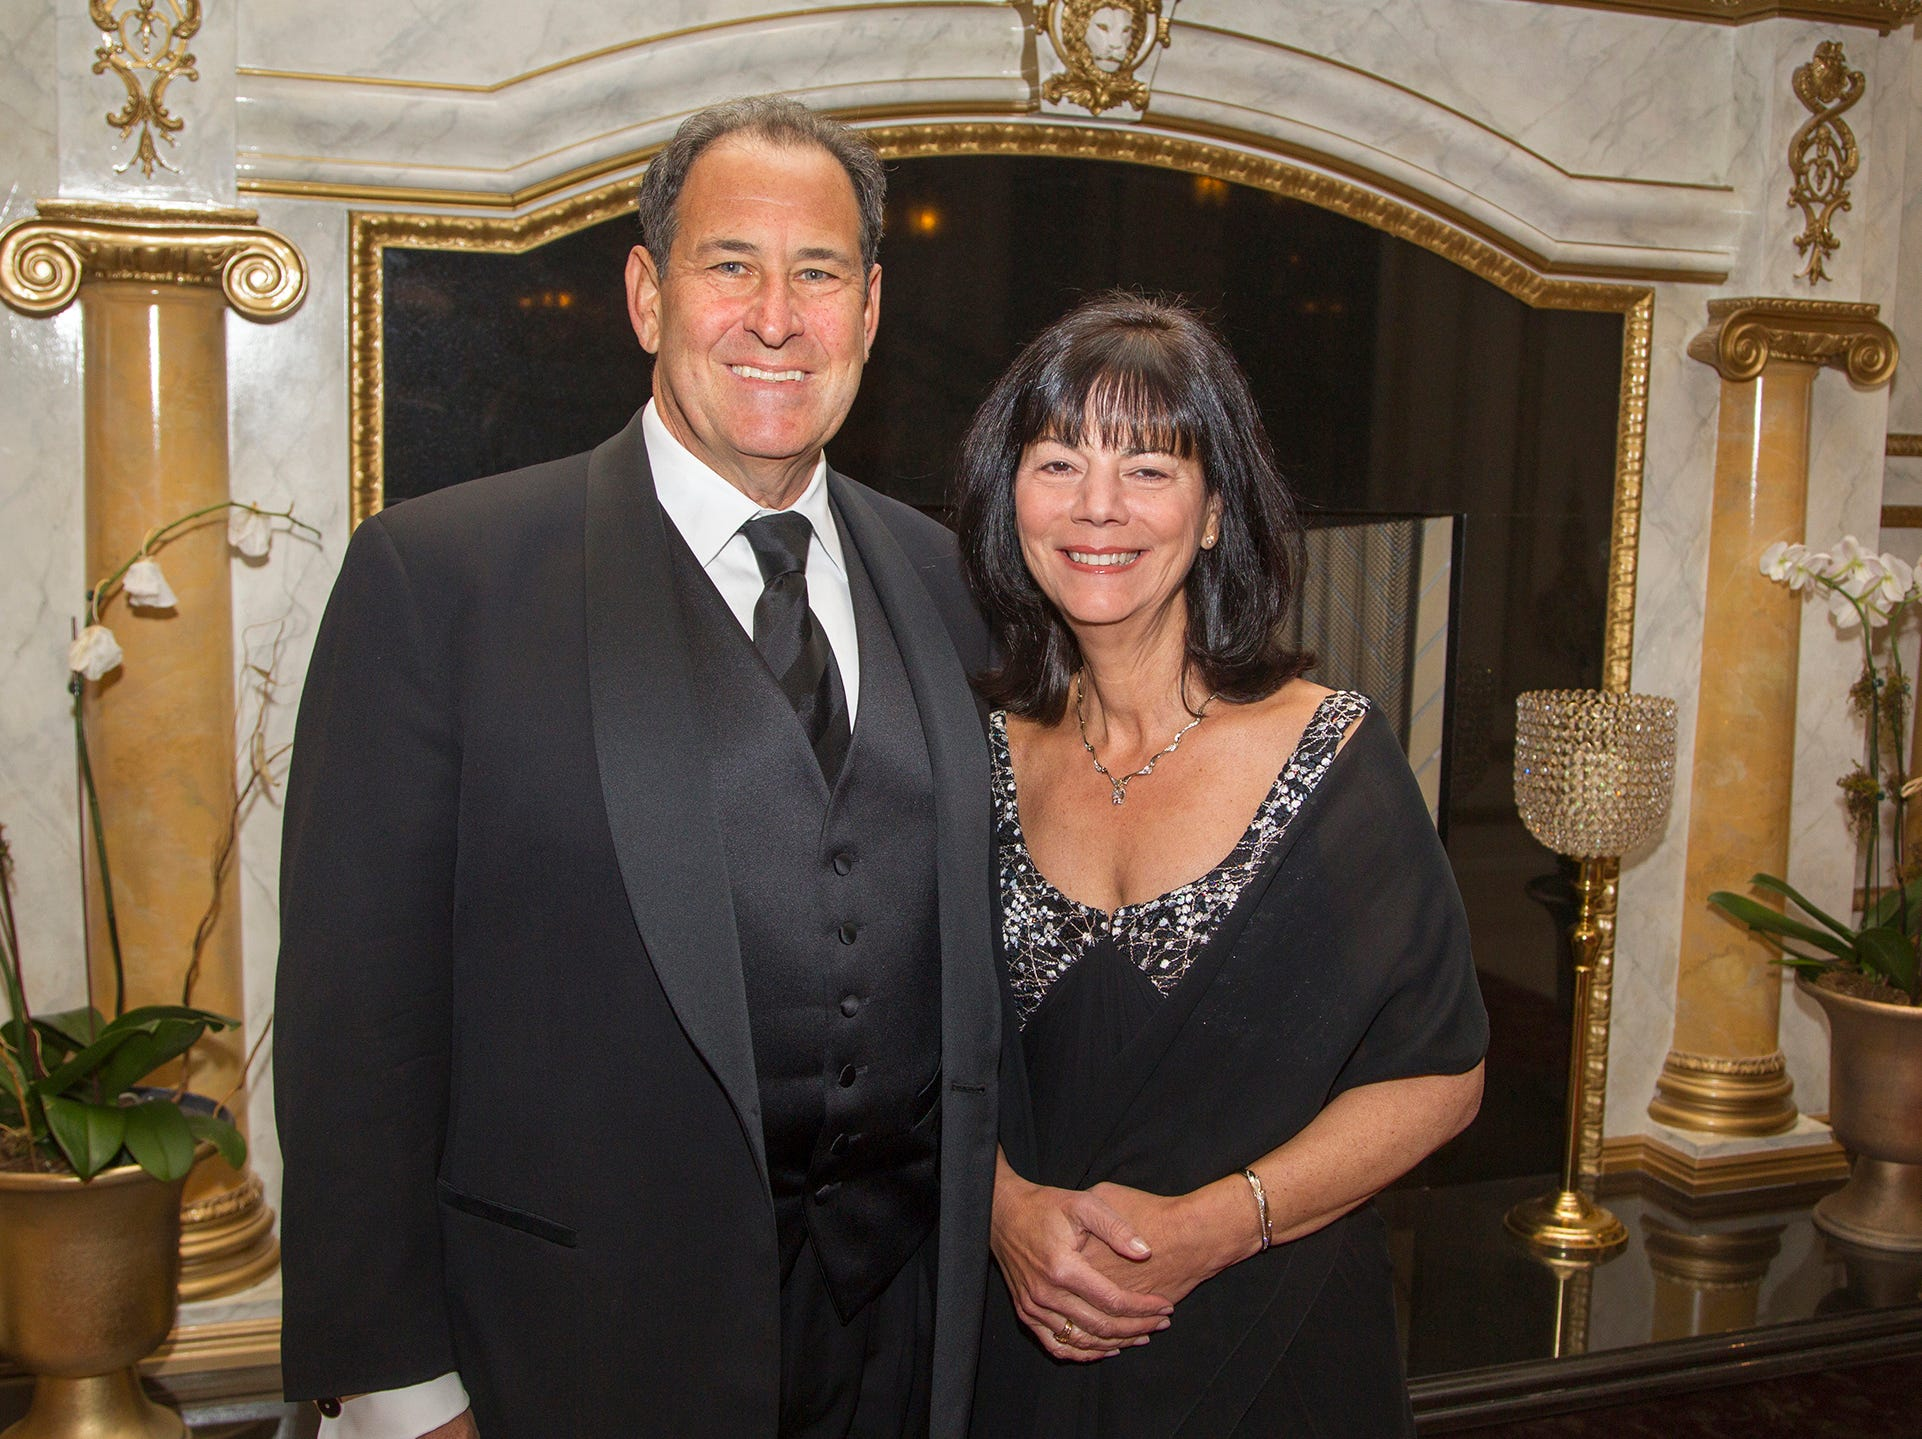 Dr. Scott W. Agins and Audrey Meyers, President and CEO of The Valley Hospital and Valley Health System. The 72nd Annual Valley Ball gala at The Legacy Castle in Pompton Plains. 11/16/2018